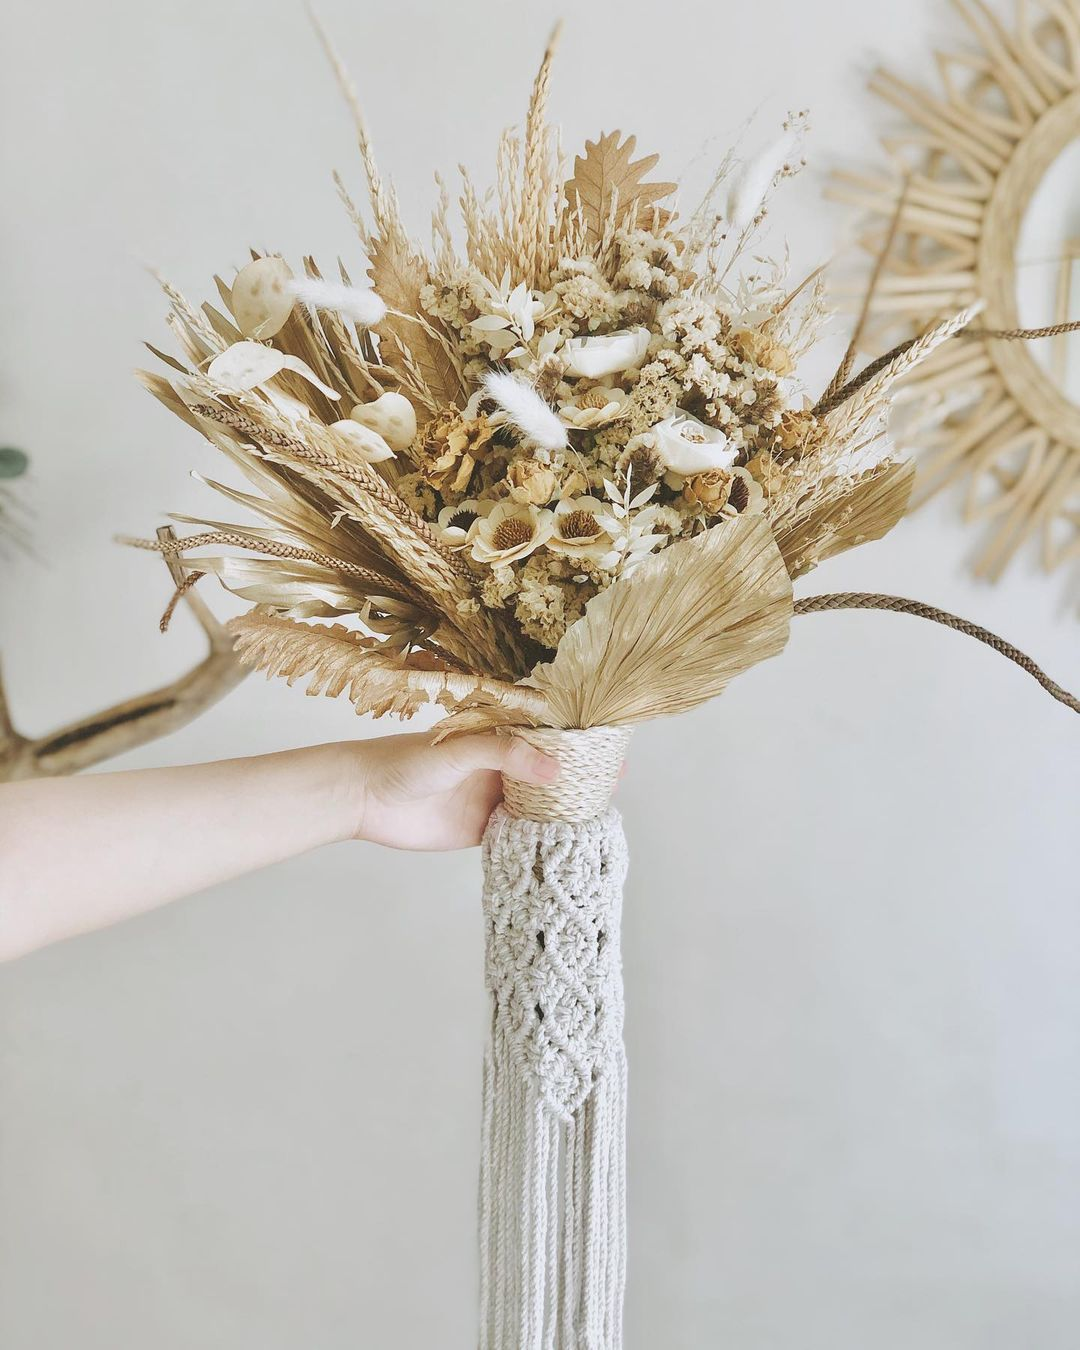 Dried flowers from online store Hygge Living PH